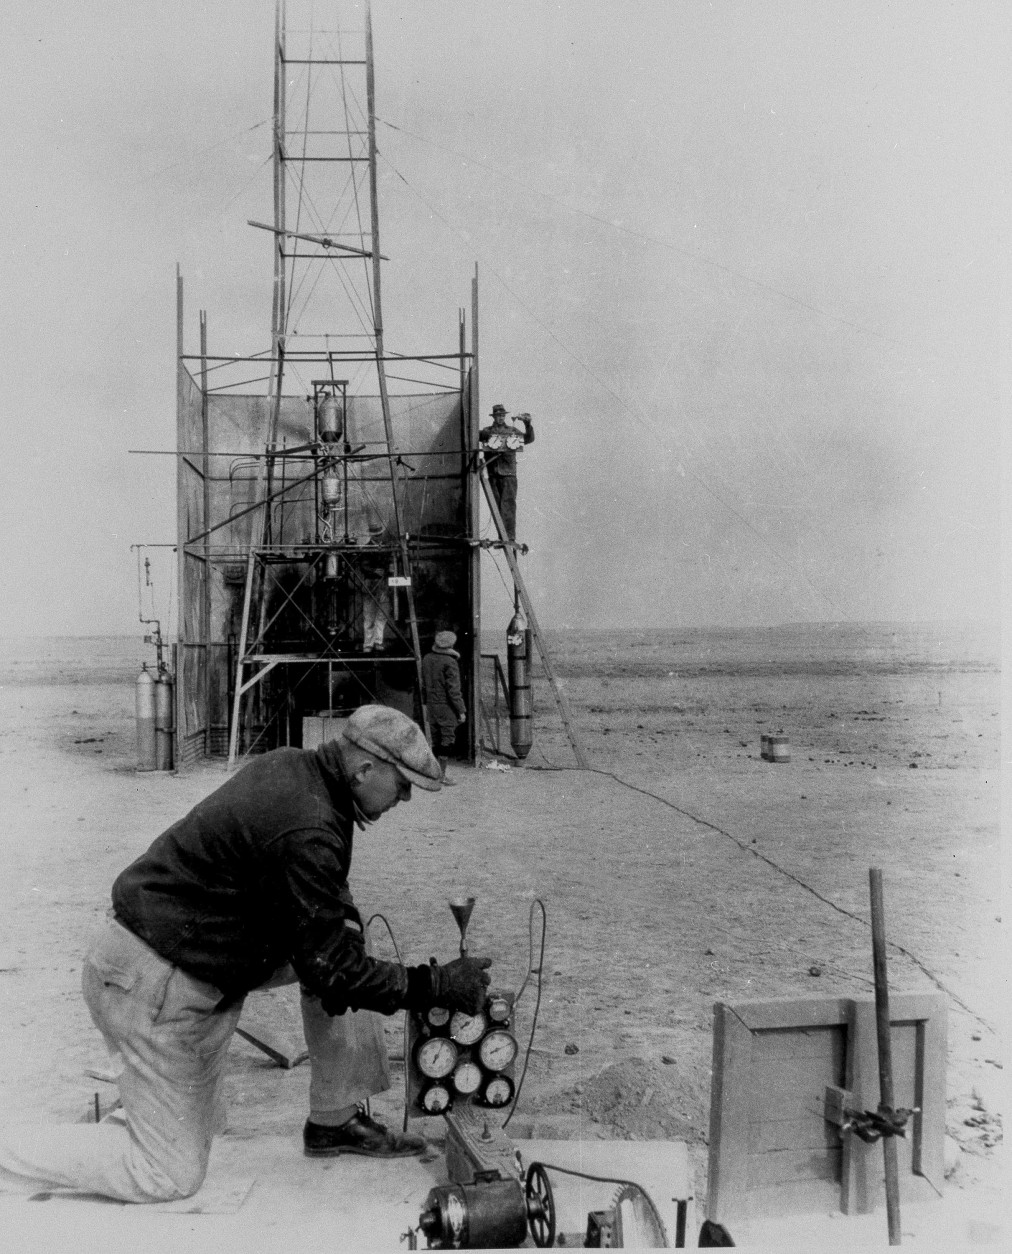 Dr. Robert H. Goddard is pictured working on his experimental rockets in Roswell, N.M. in an undated photo. (AP Photo)